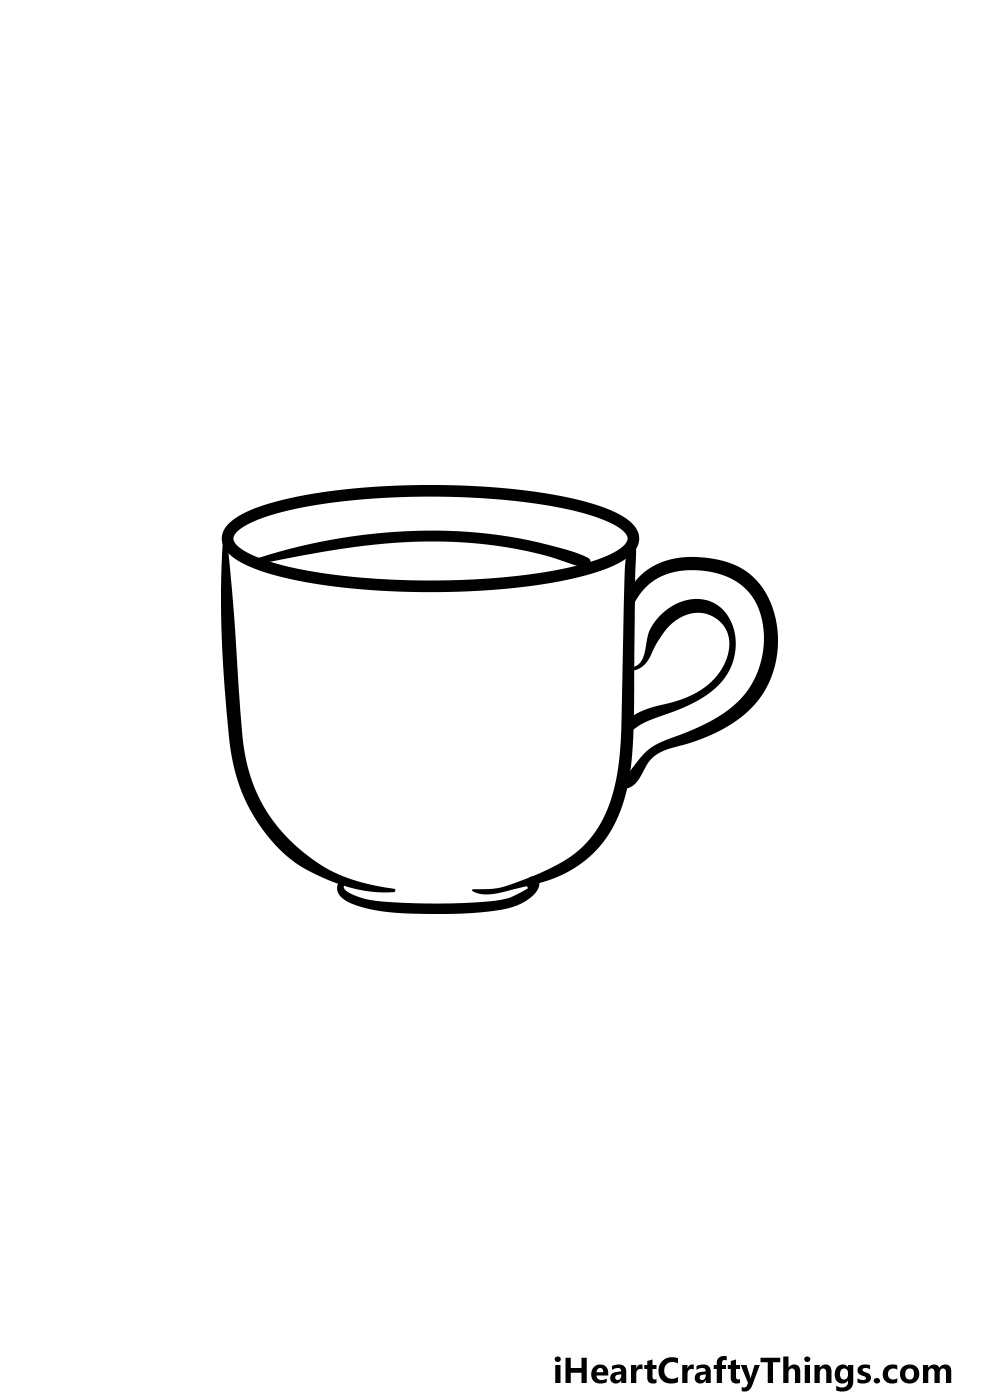 drawing a cup step 5